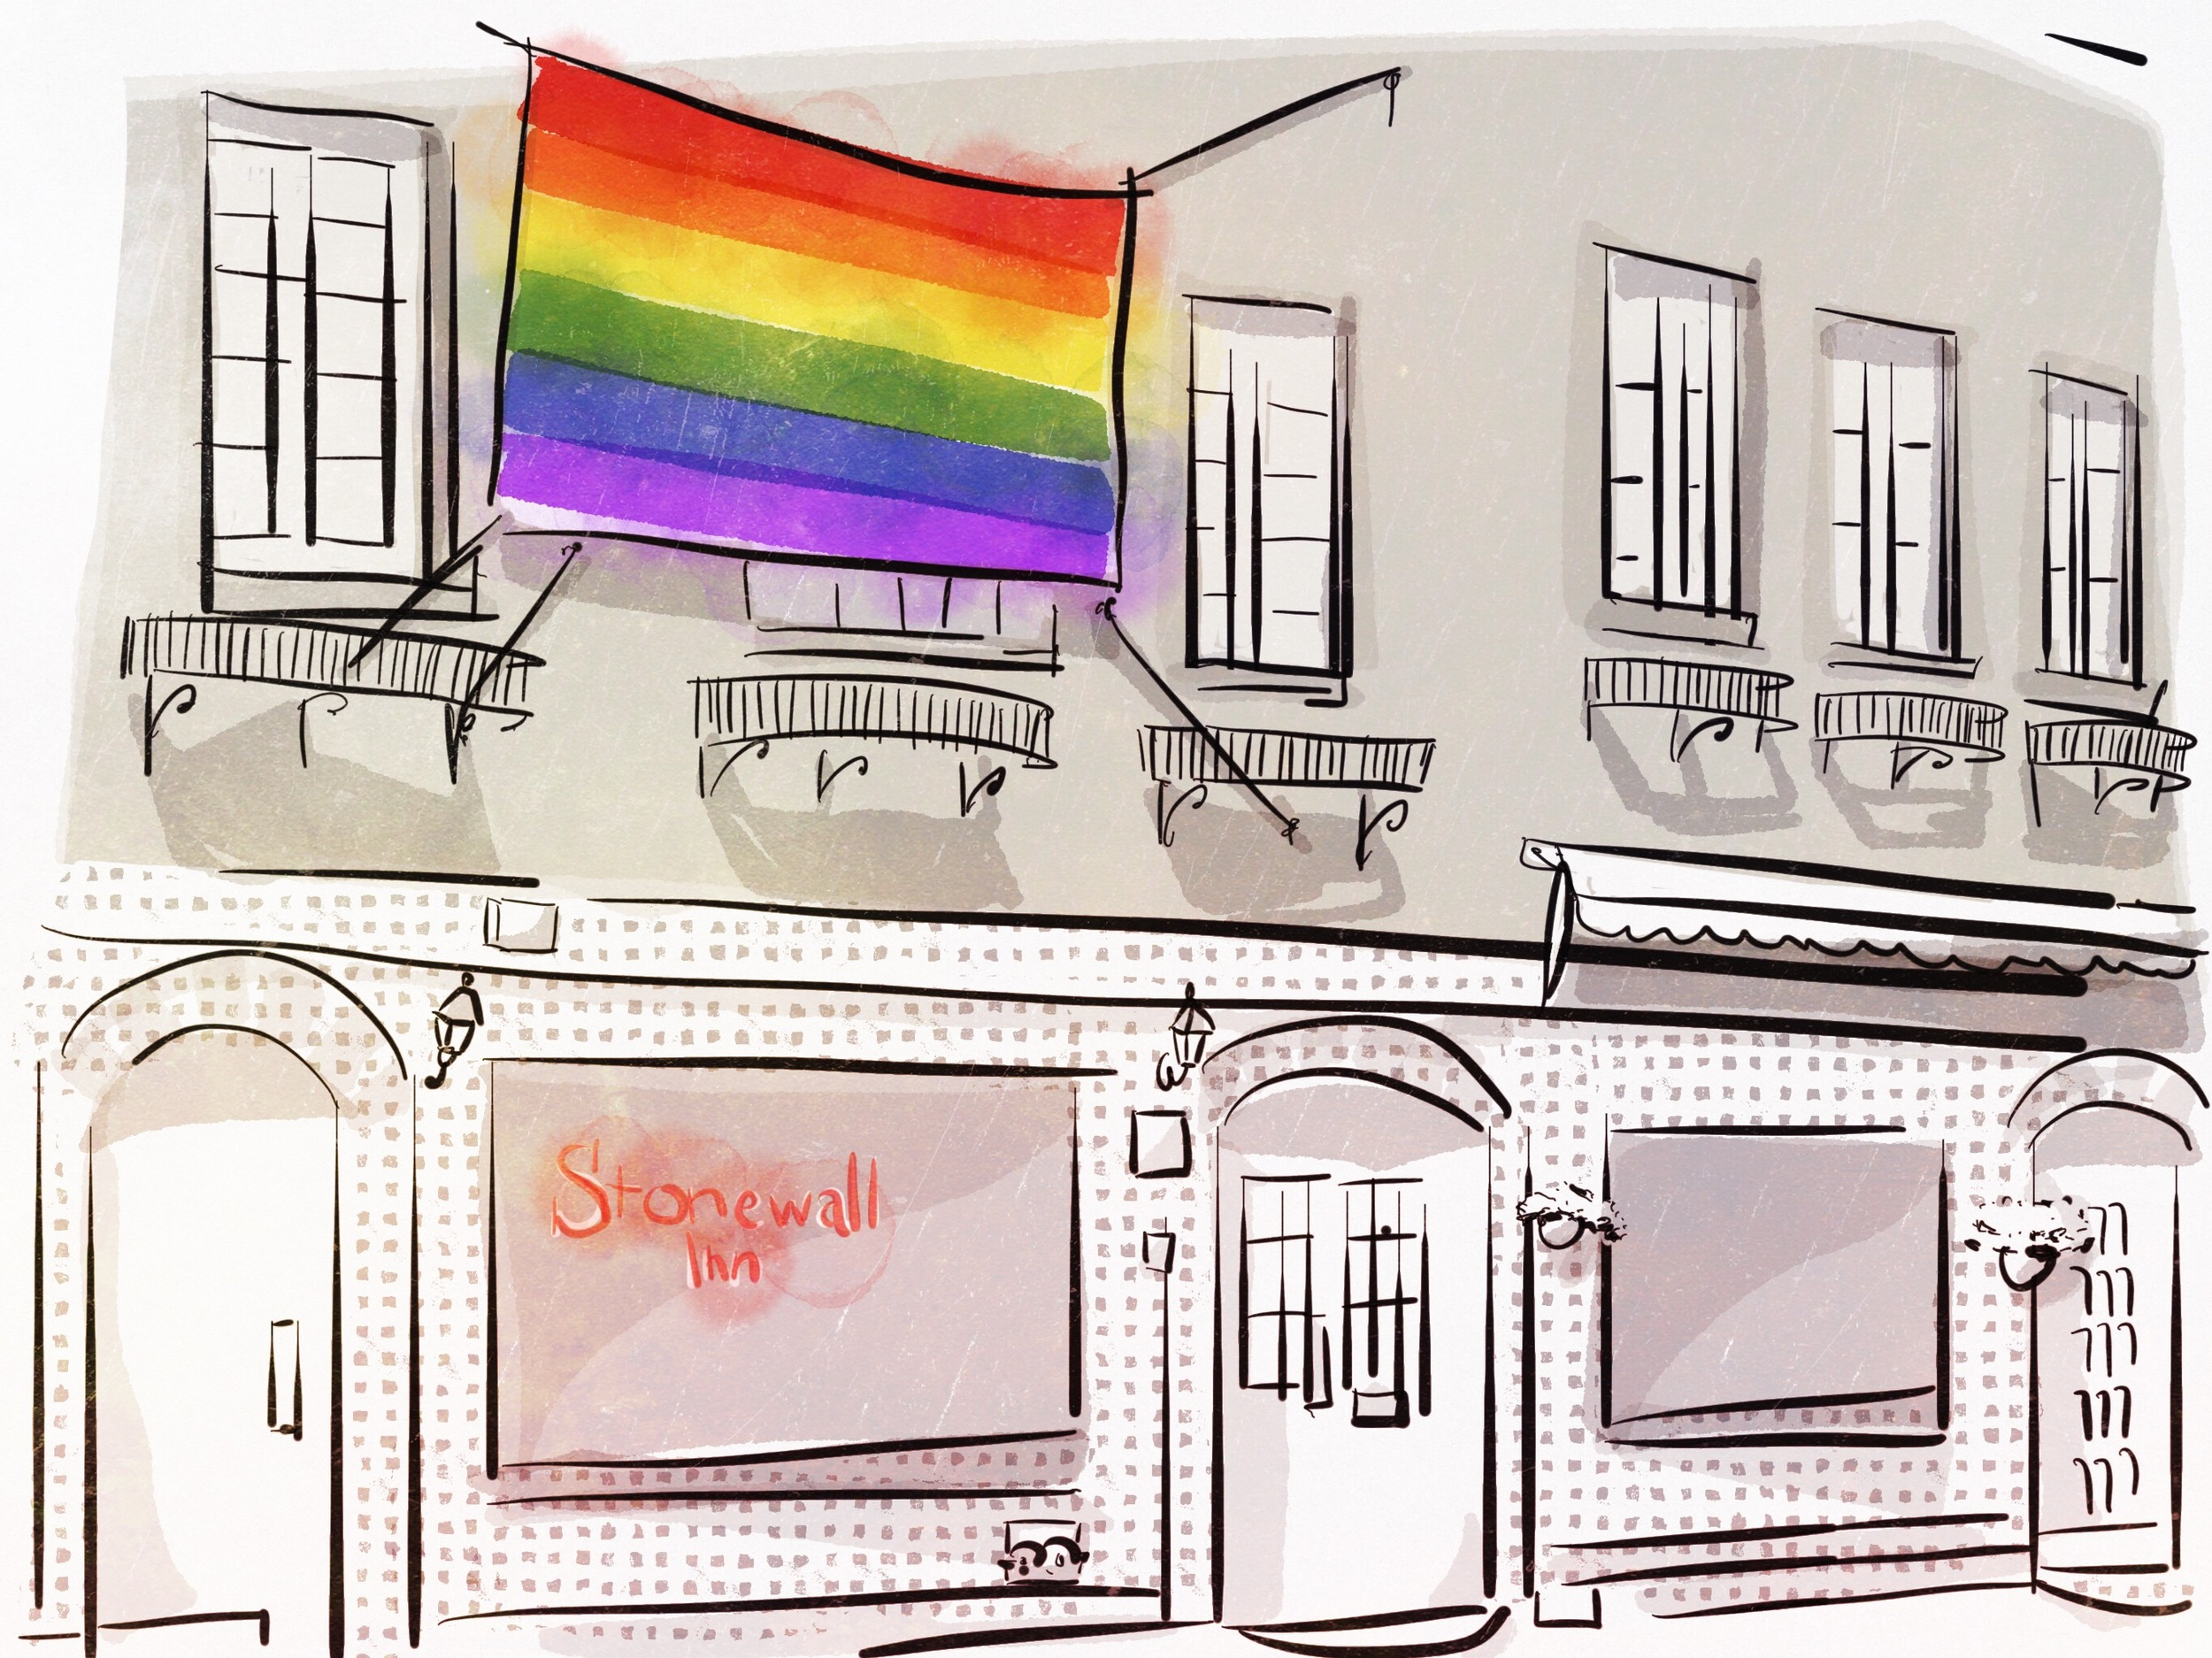 Stonewall Inn, ready for your historic pilgrimage